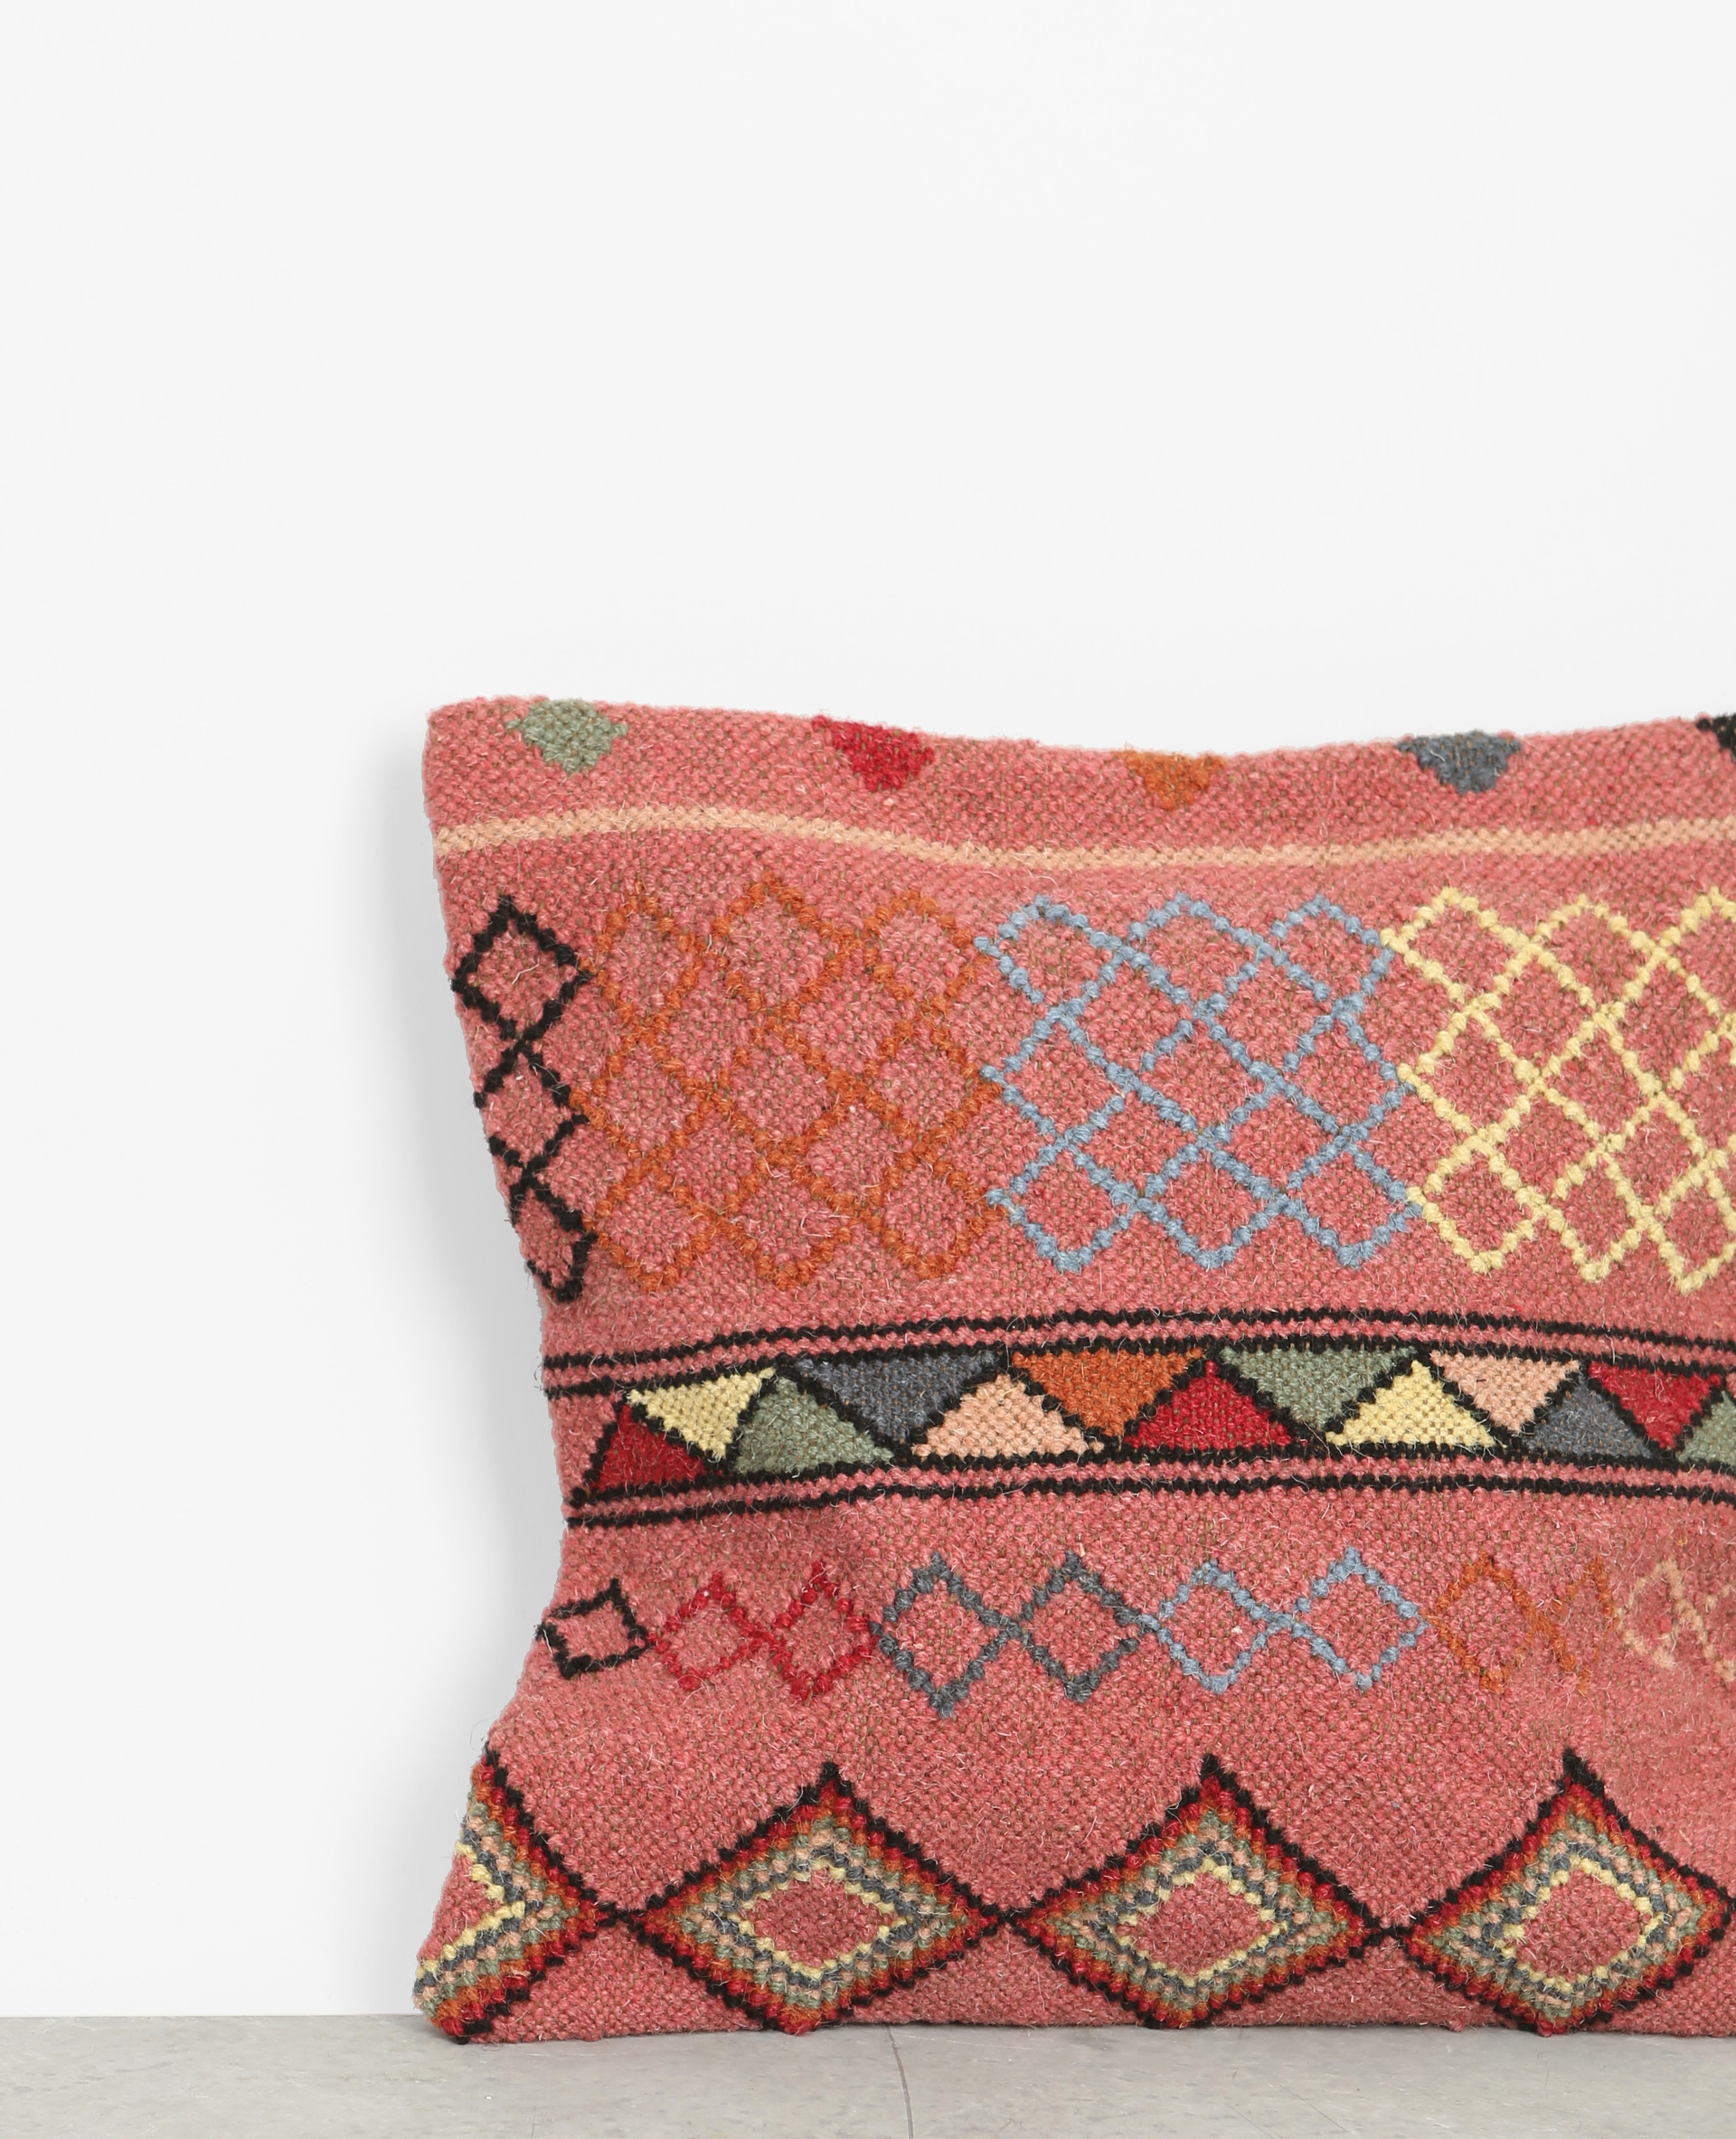 housse de coussin en toile de jute esprit kilim rouge 904016124g0a pimkie. Black Bedroom Furniture Sets. Home Design Ideas